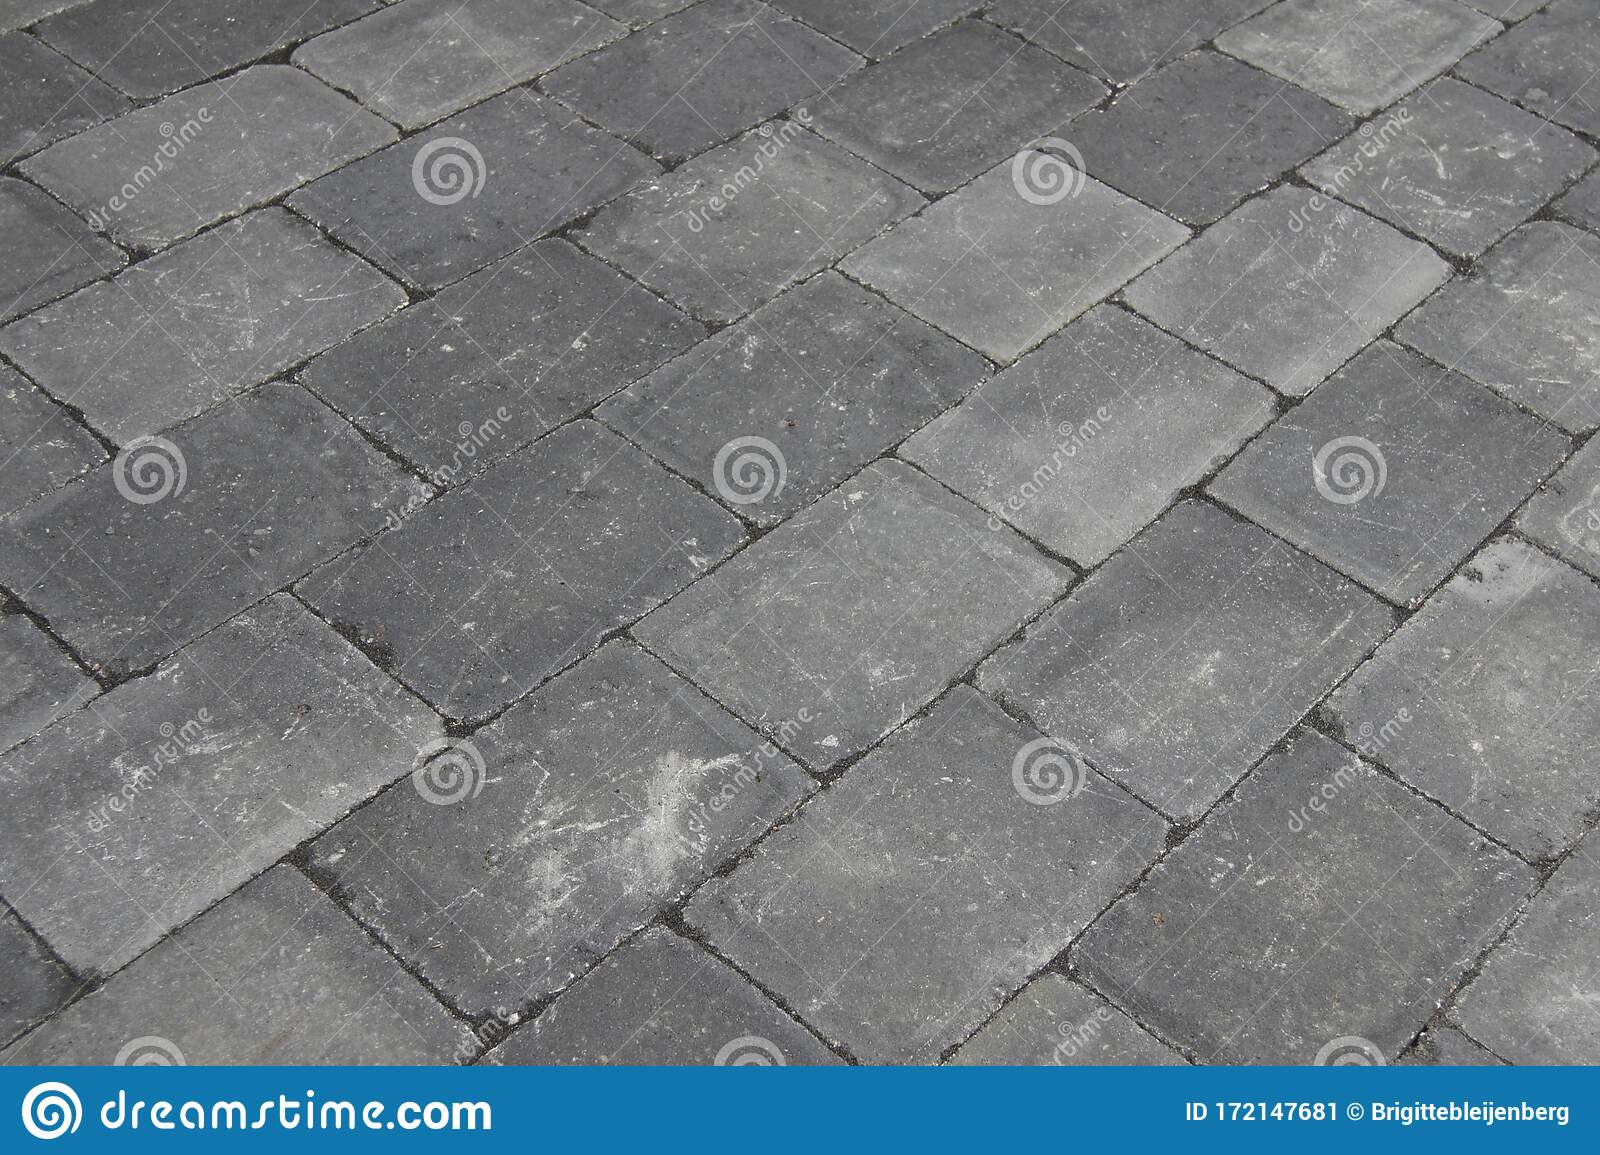 Stone Background Texture Road Street Floor Parking Structure Granite Grey Stock Image Image Of Granite Pattern 172147681